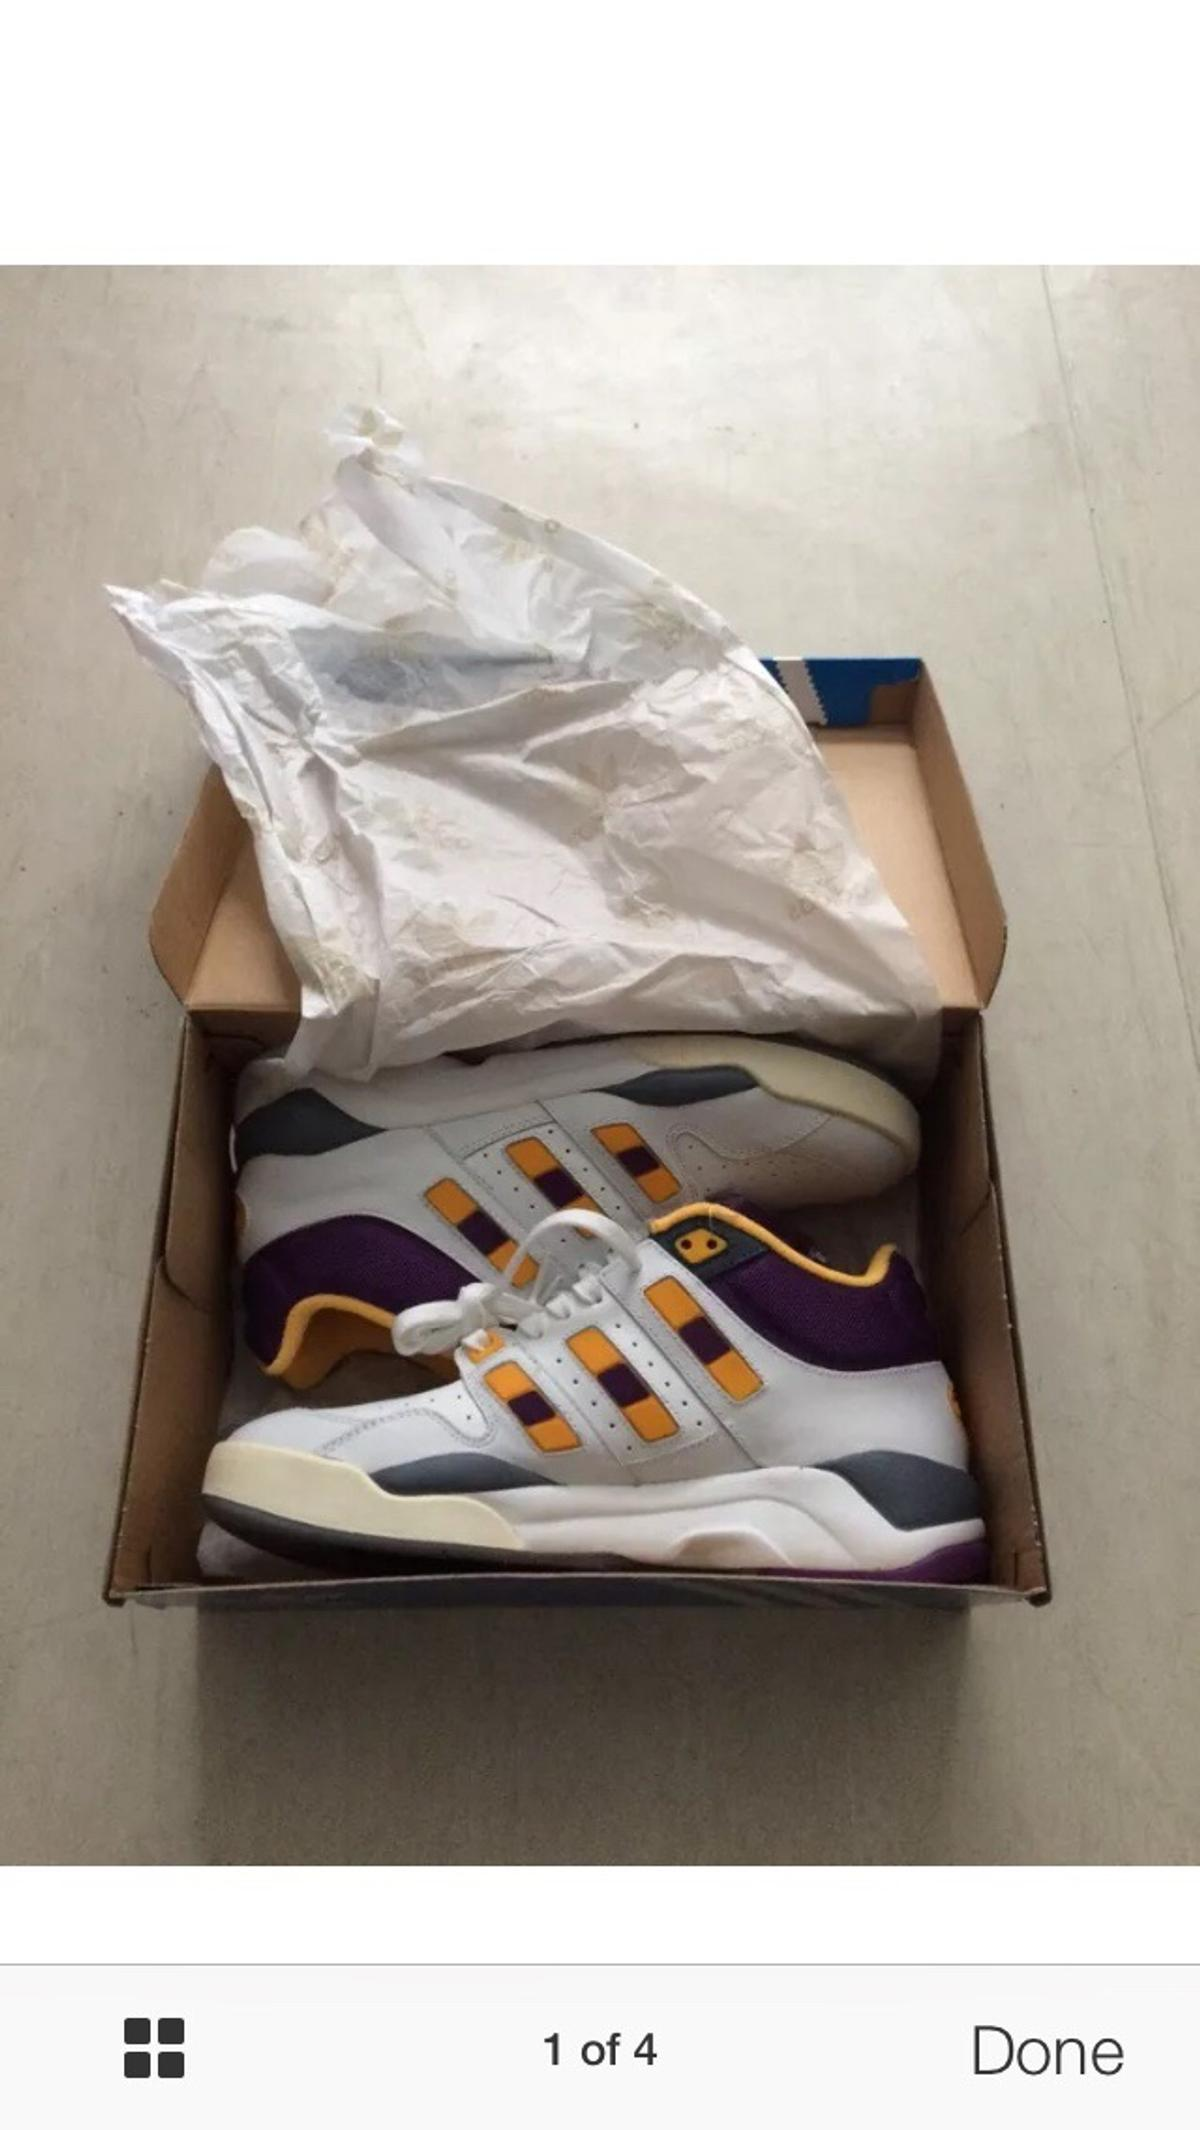 adidas torsion court strategy uk size 10 in CR7 London for £40 00